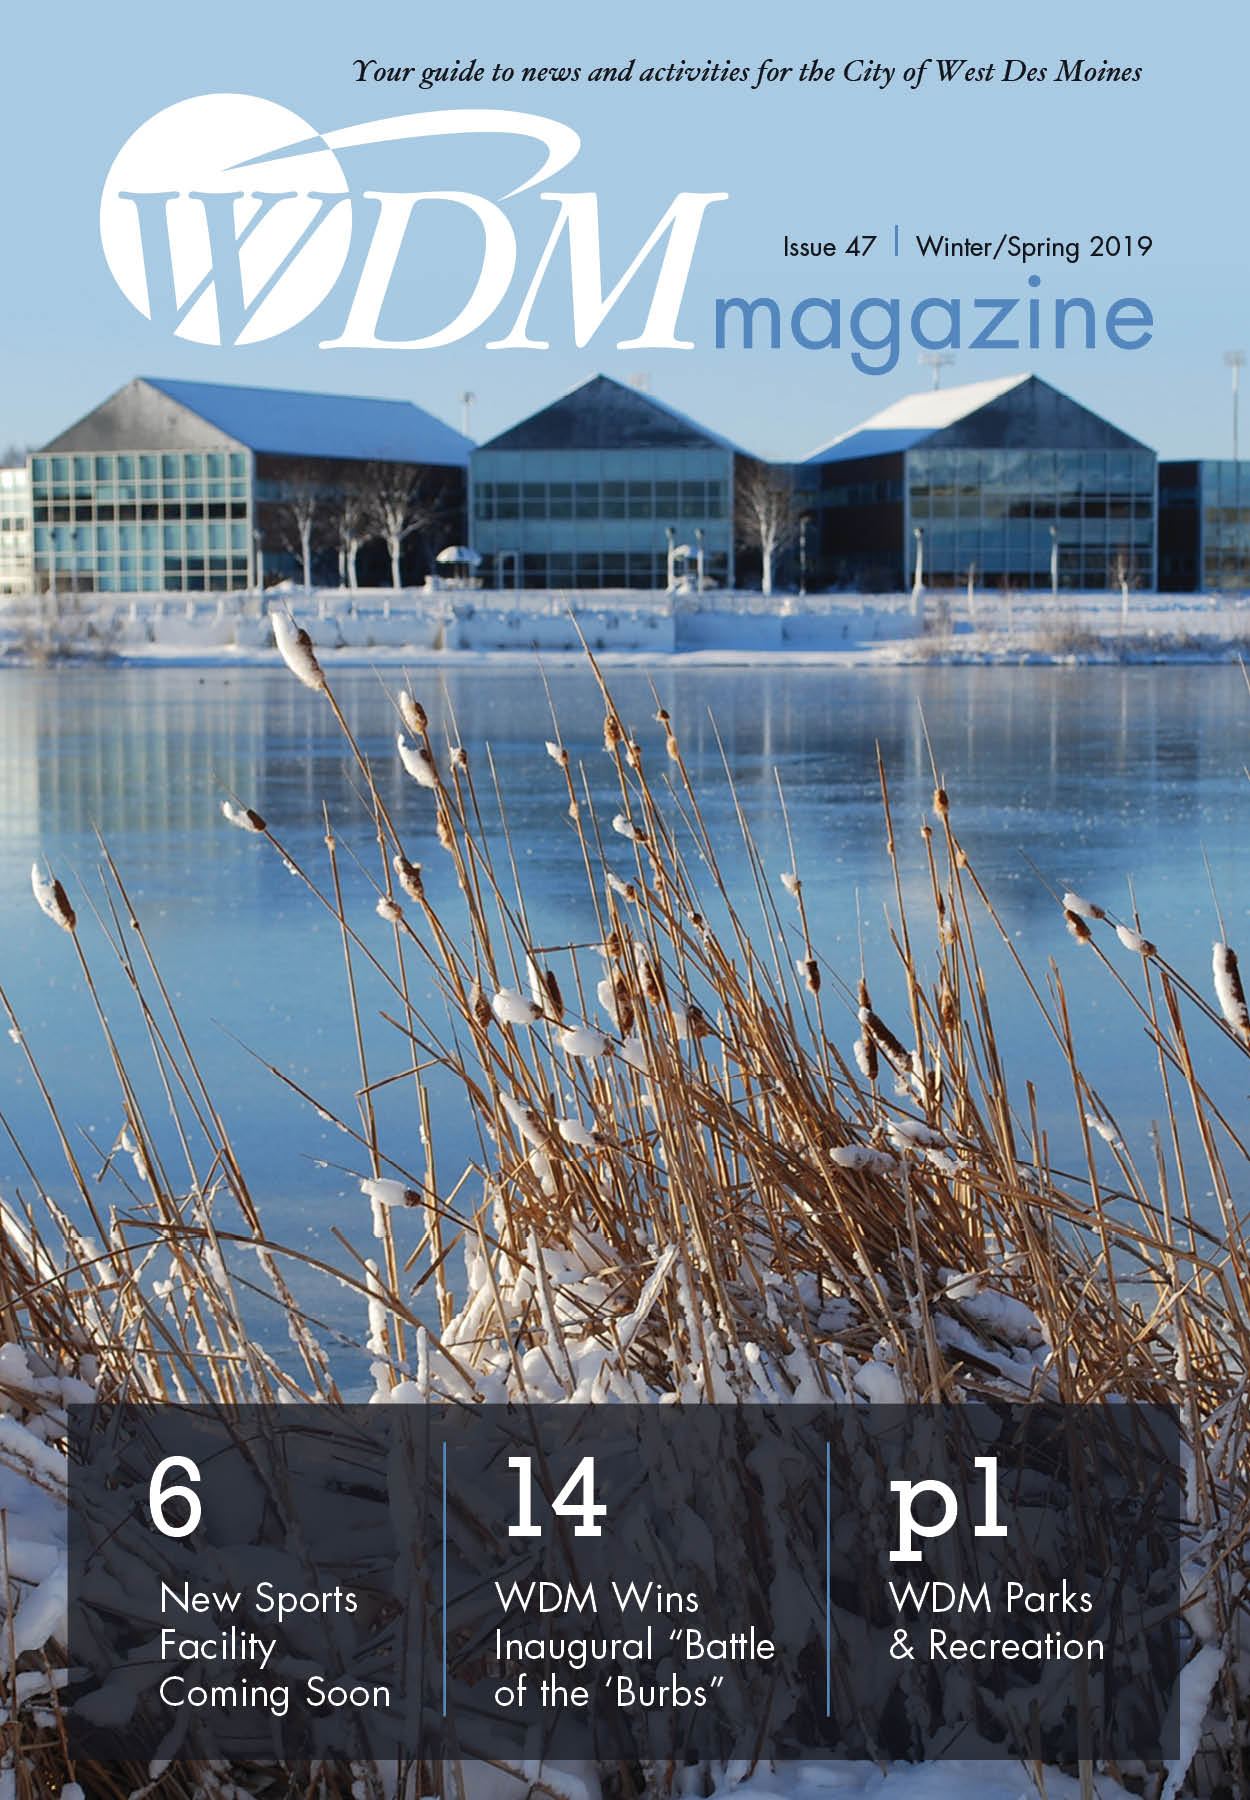 WDM magazine, Winter Spring 2019, Cover Image